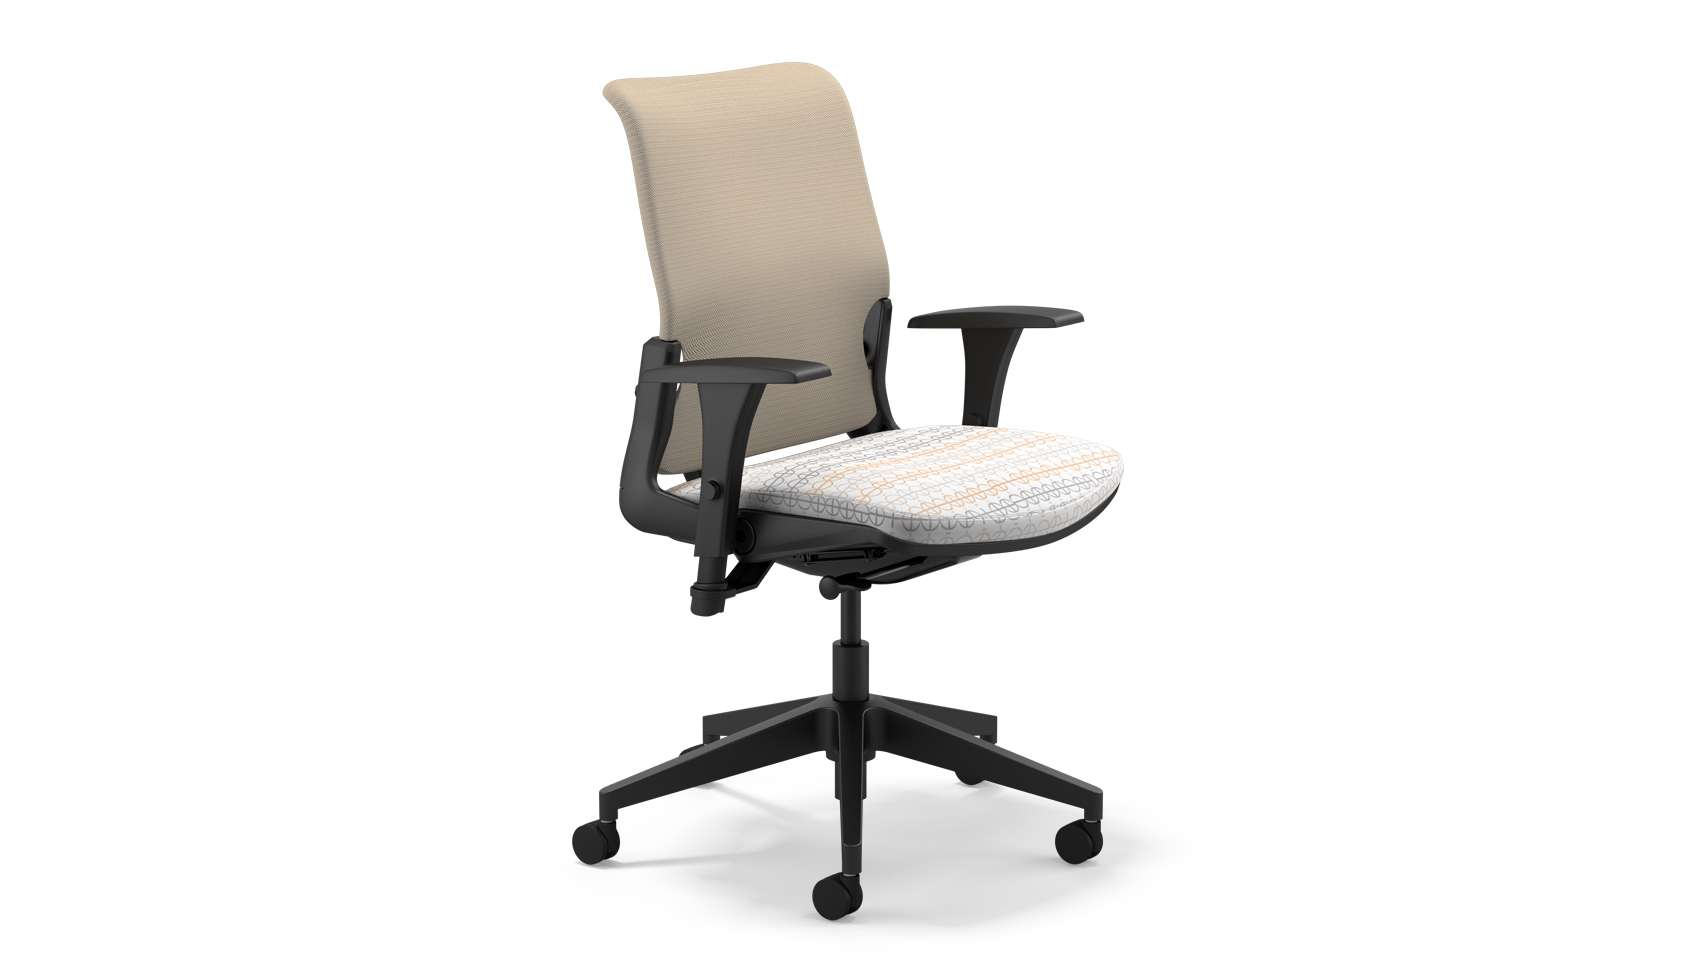 Ofs task chair